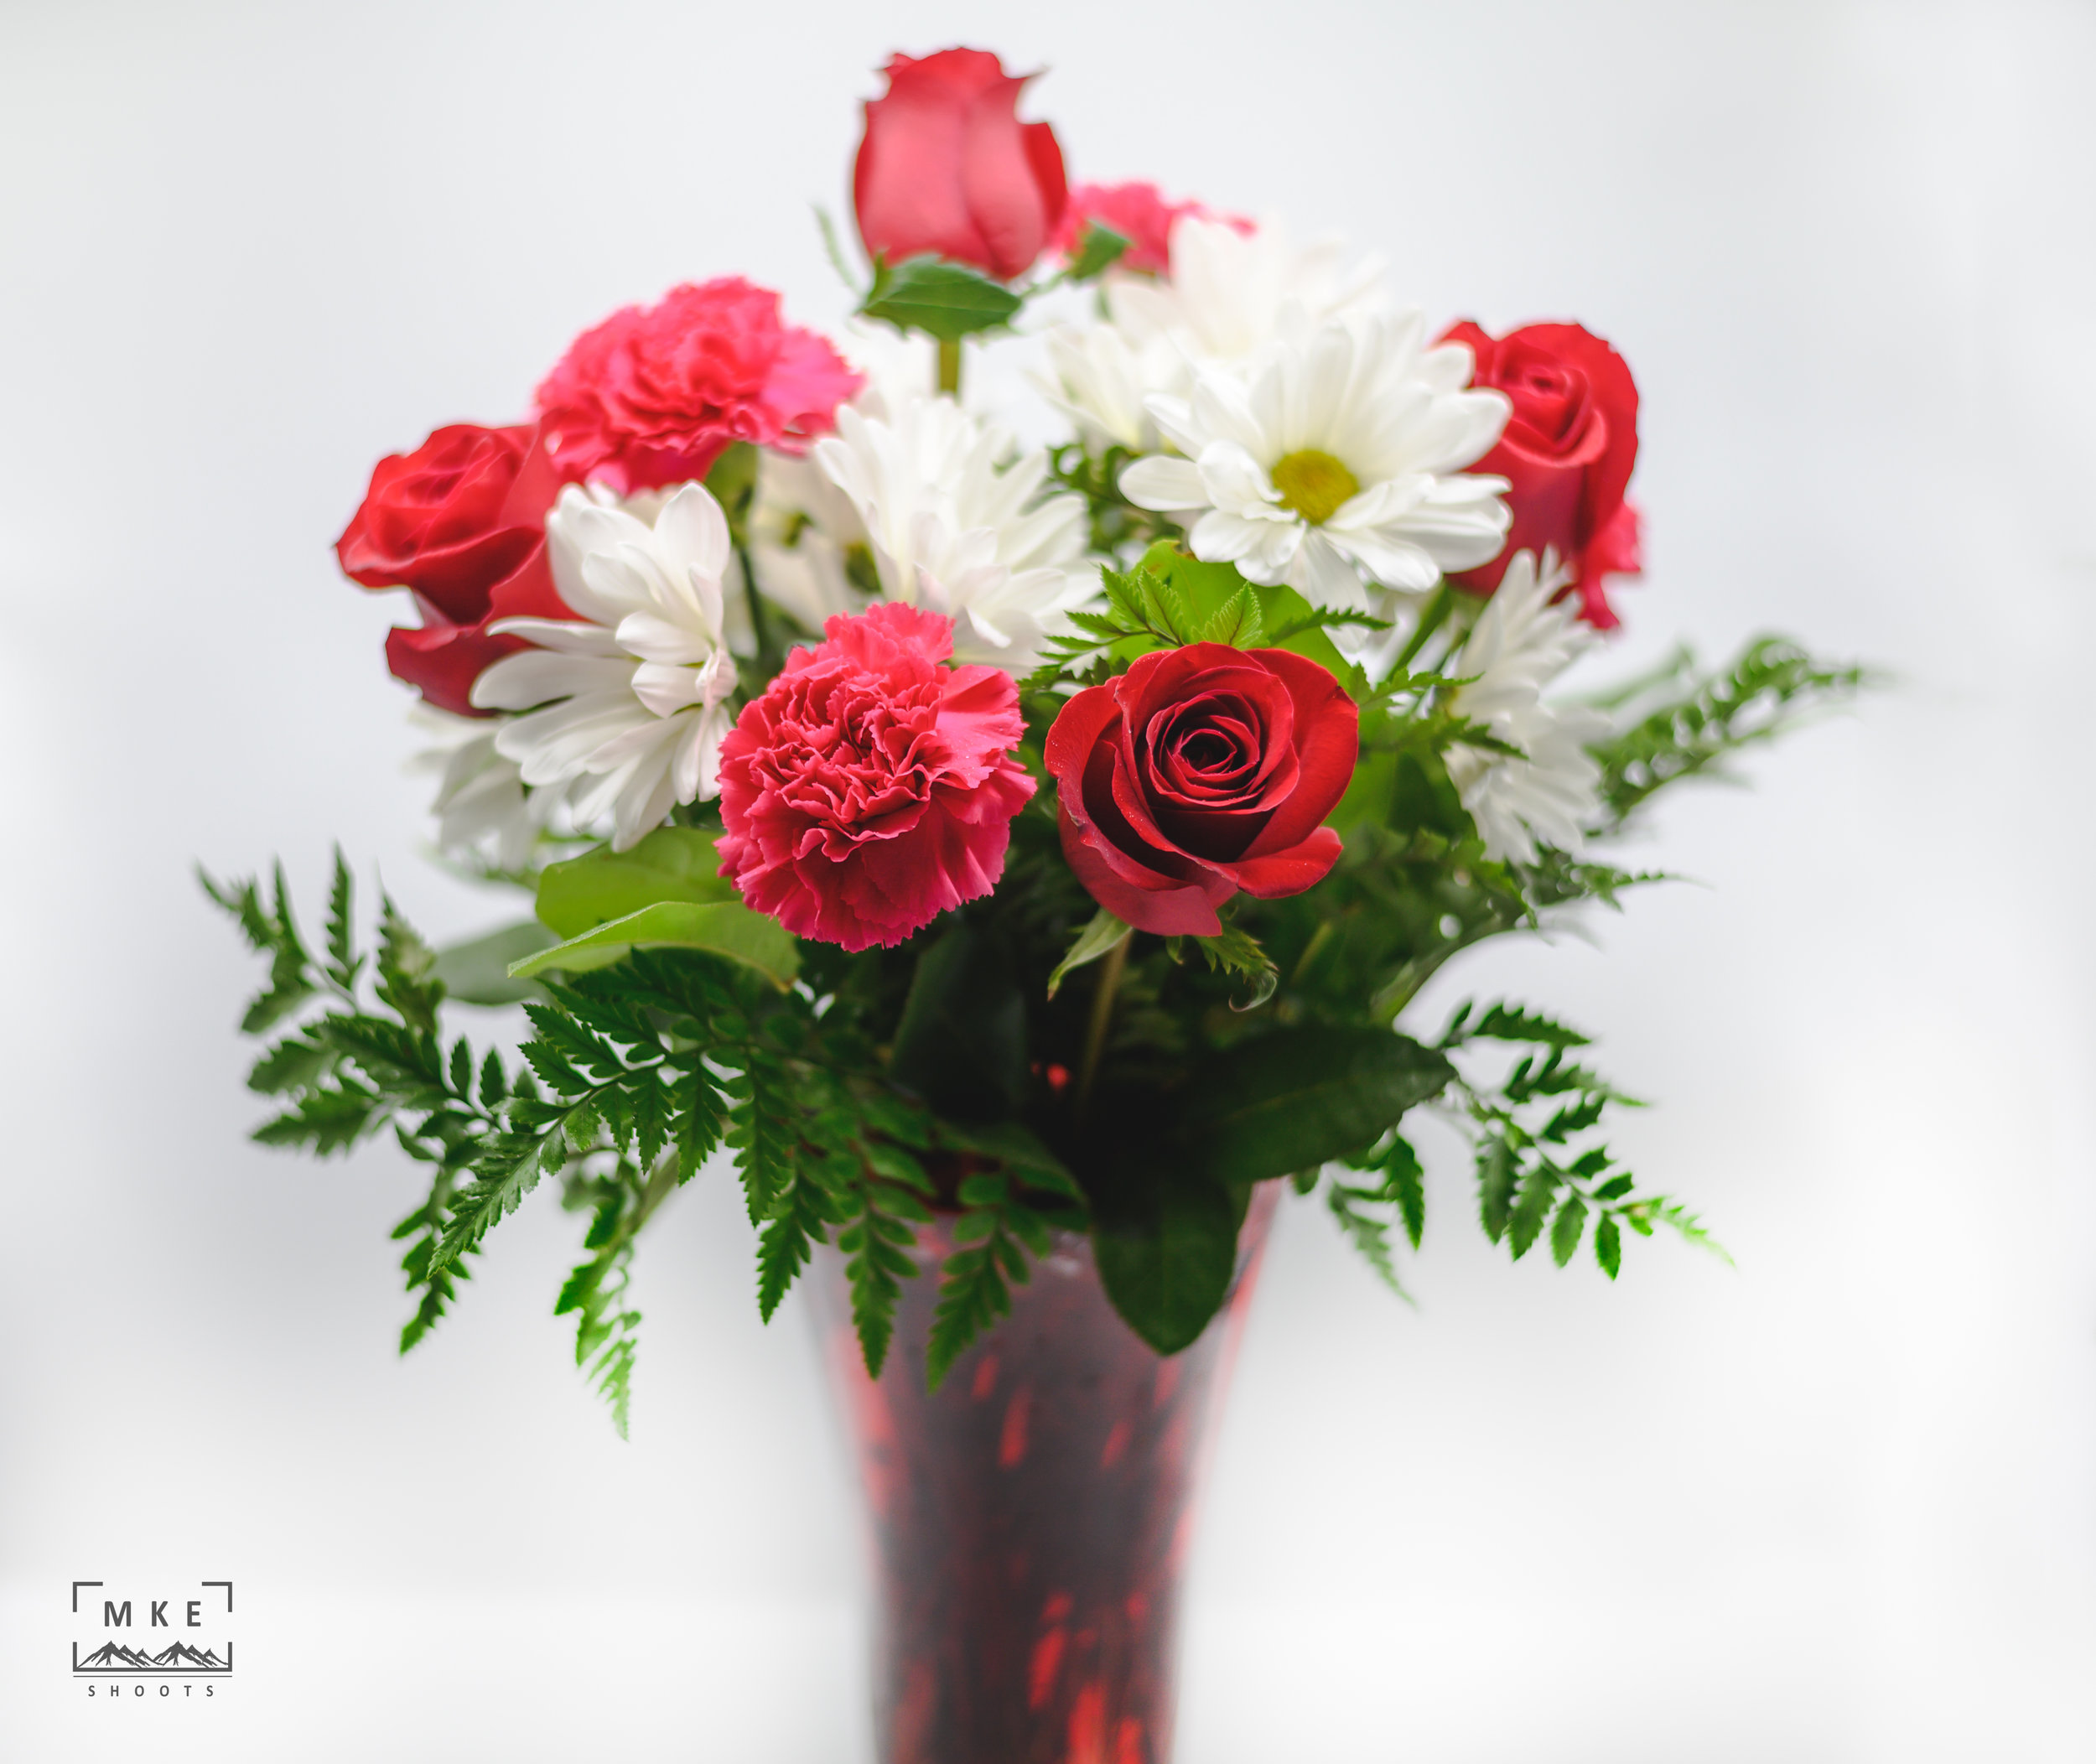 - I really love working with him personally and professionally. He is very patient and tries to understand what you are looking for and delivers for sure. I would definitely recommend him for your next event!!  -Adnan Baliwala, Woodland Warner Flower